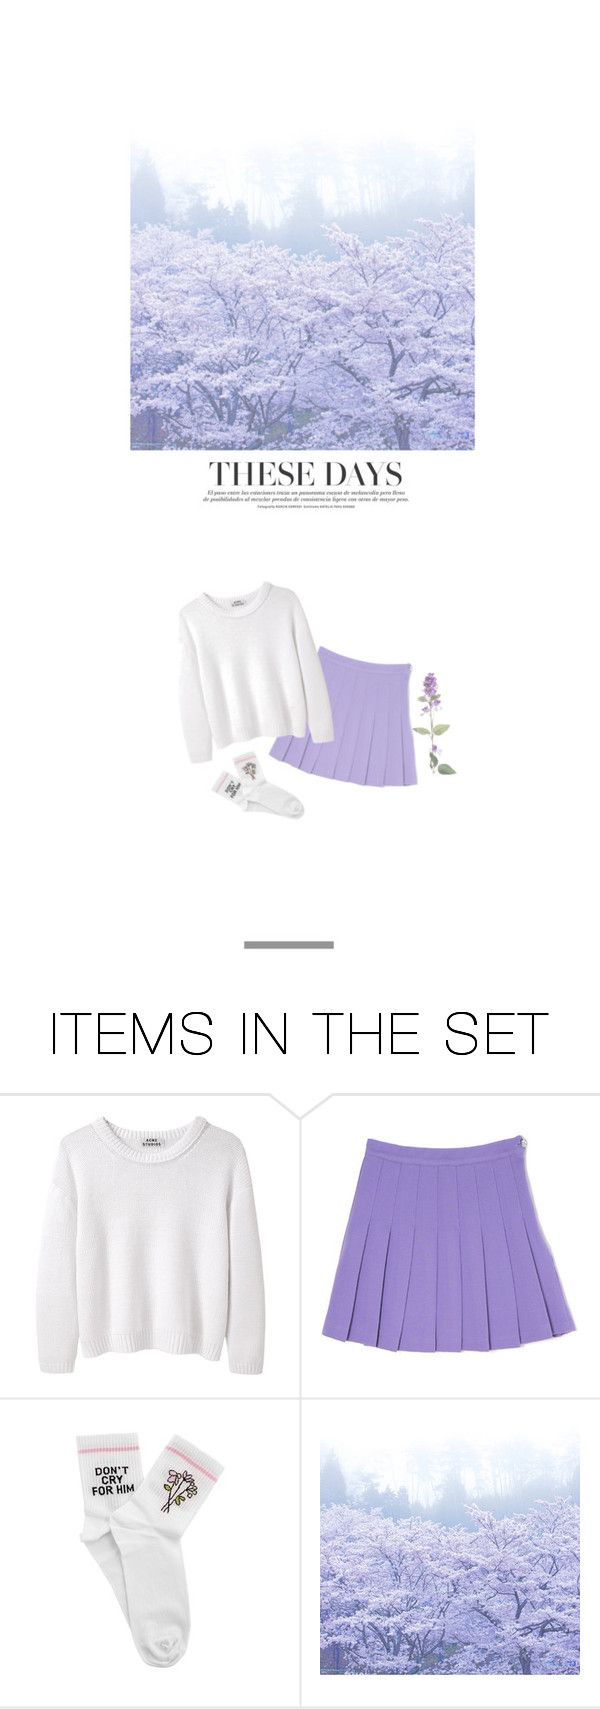 """🔮Plans, thoughts and changes 🔮"" by cherryblossom-panda ❤ liked on Polyvore featuring art"